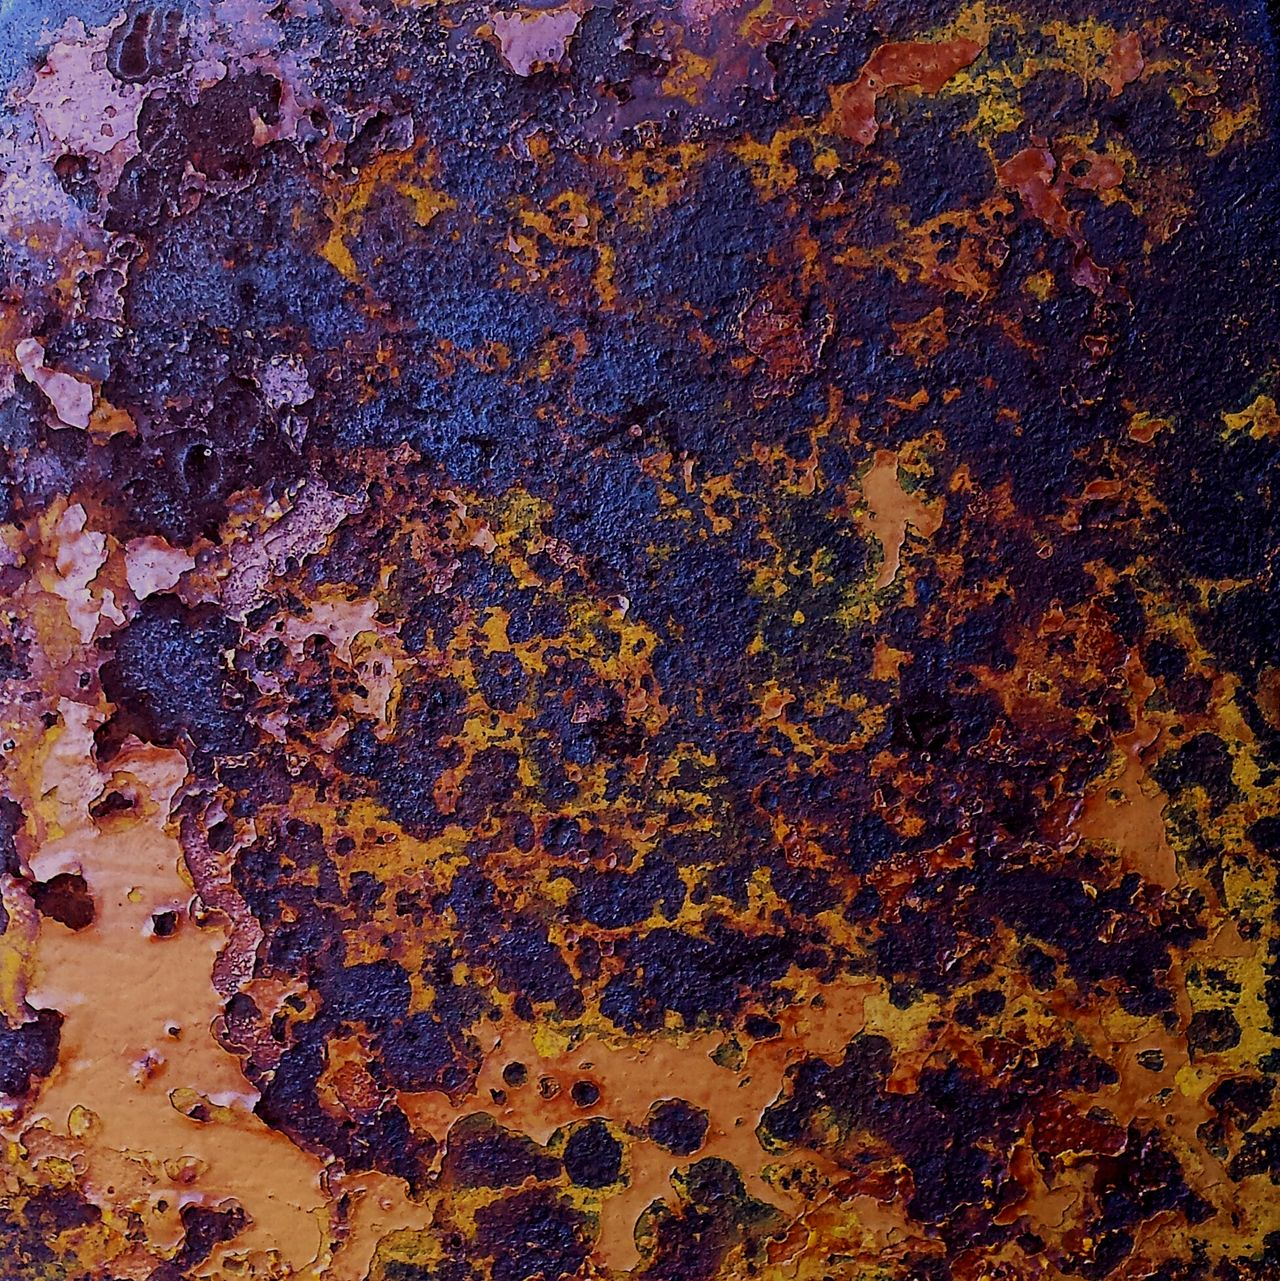 Paint Decay Urban Filter 4 Observing Textures And Surfaces Rustygoodness Enjoying The View Taking Photos Light And Shadow Texture Working